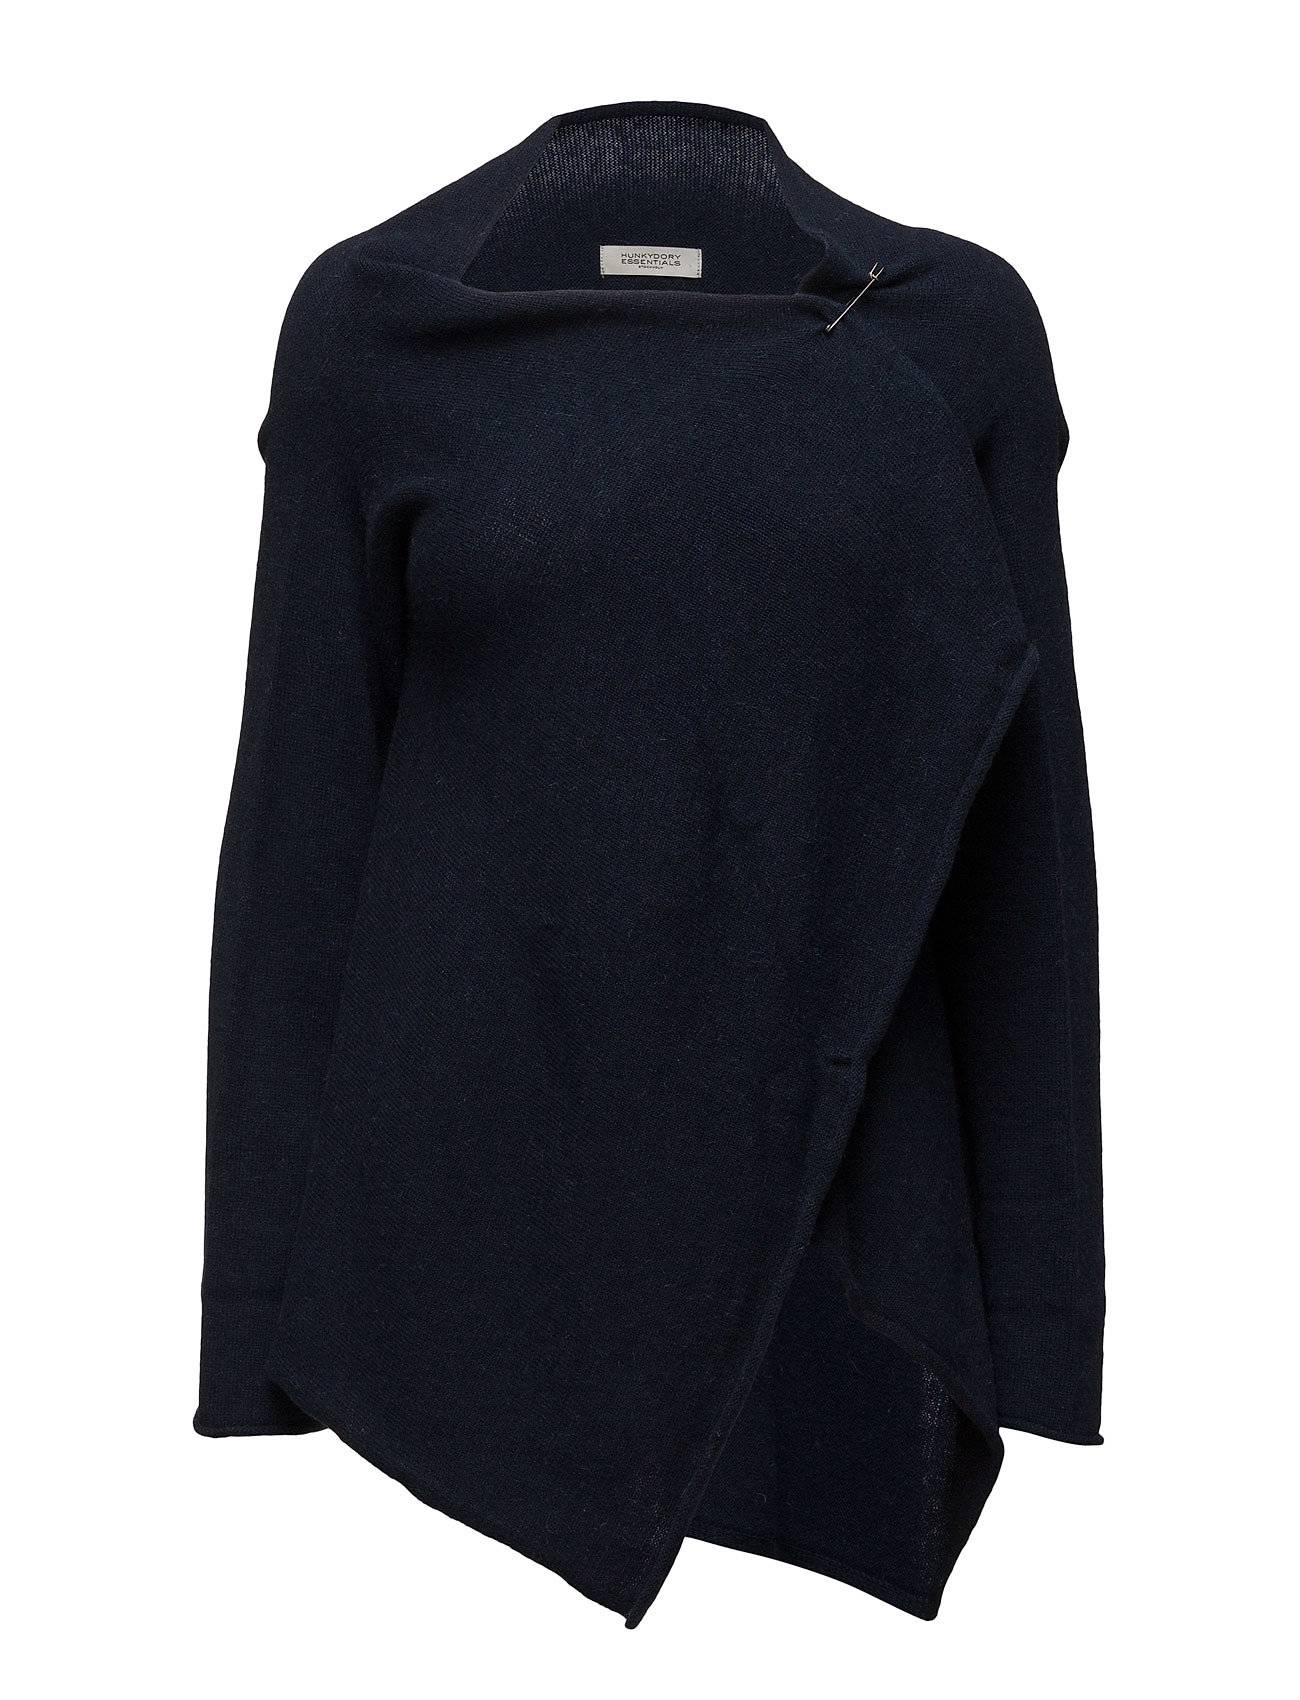 Hunkydory Essential Japan Knit